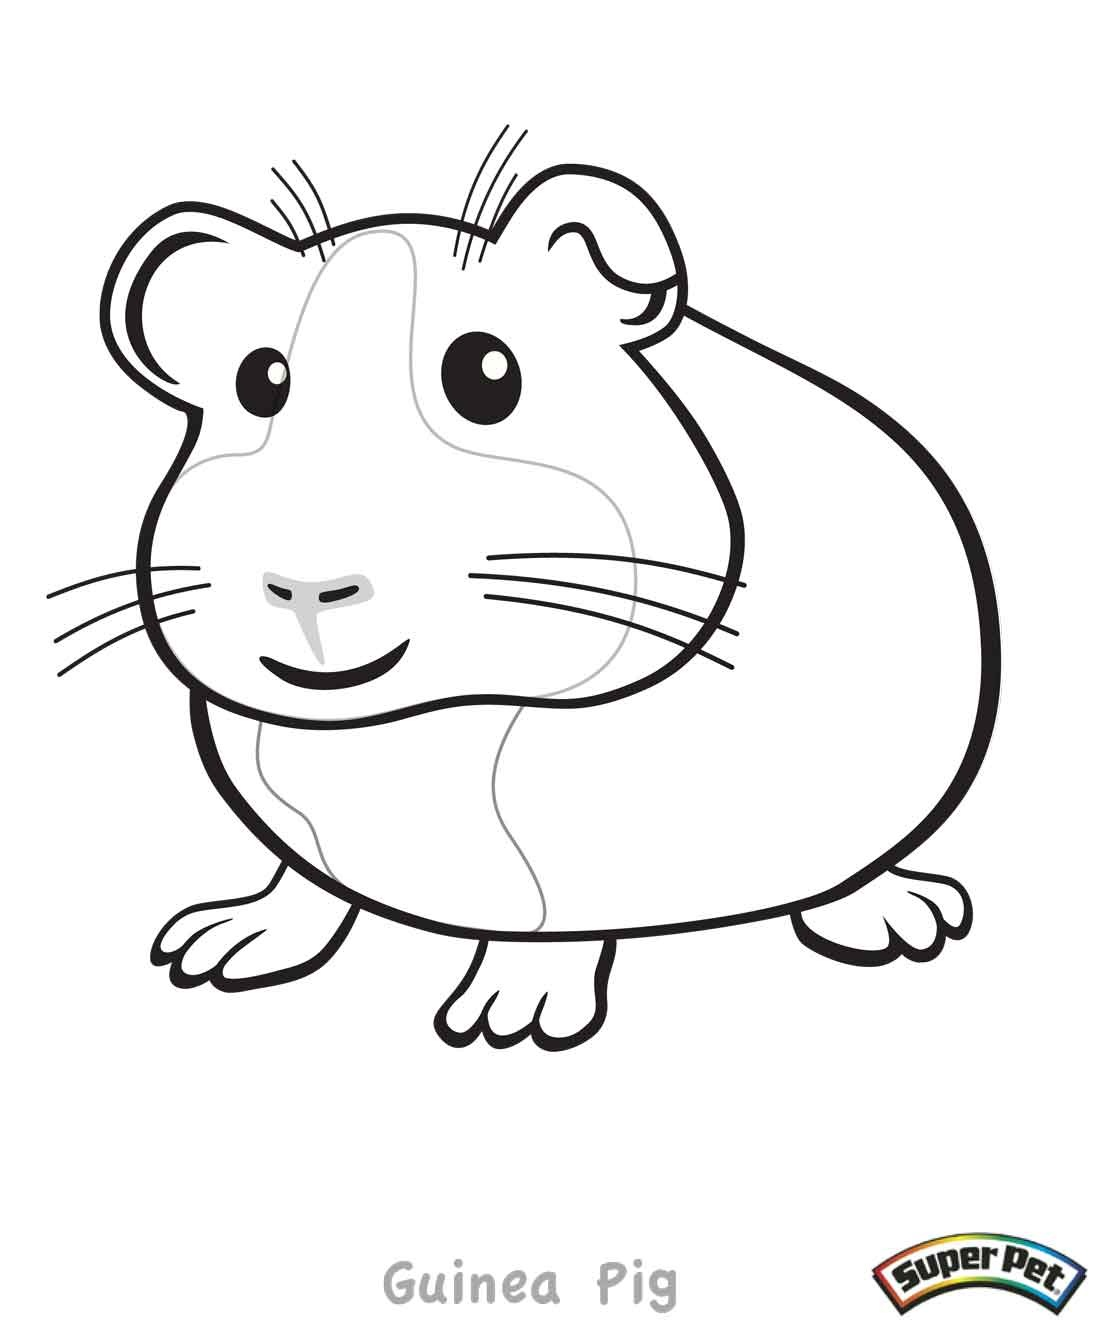 It is a graphic of Comprehensive Coloring Pages Of Guinea Pigs Homes